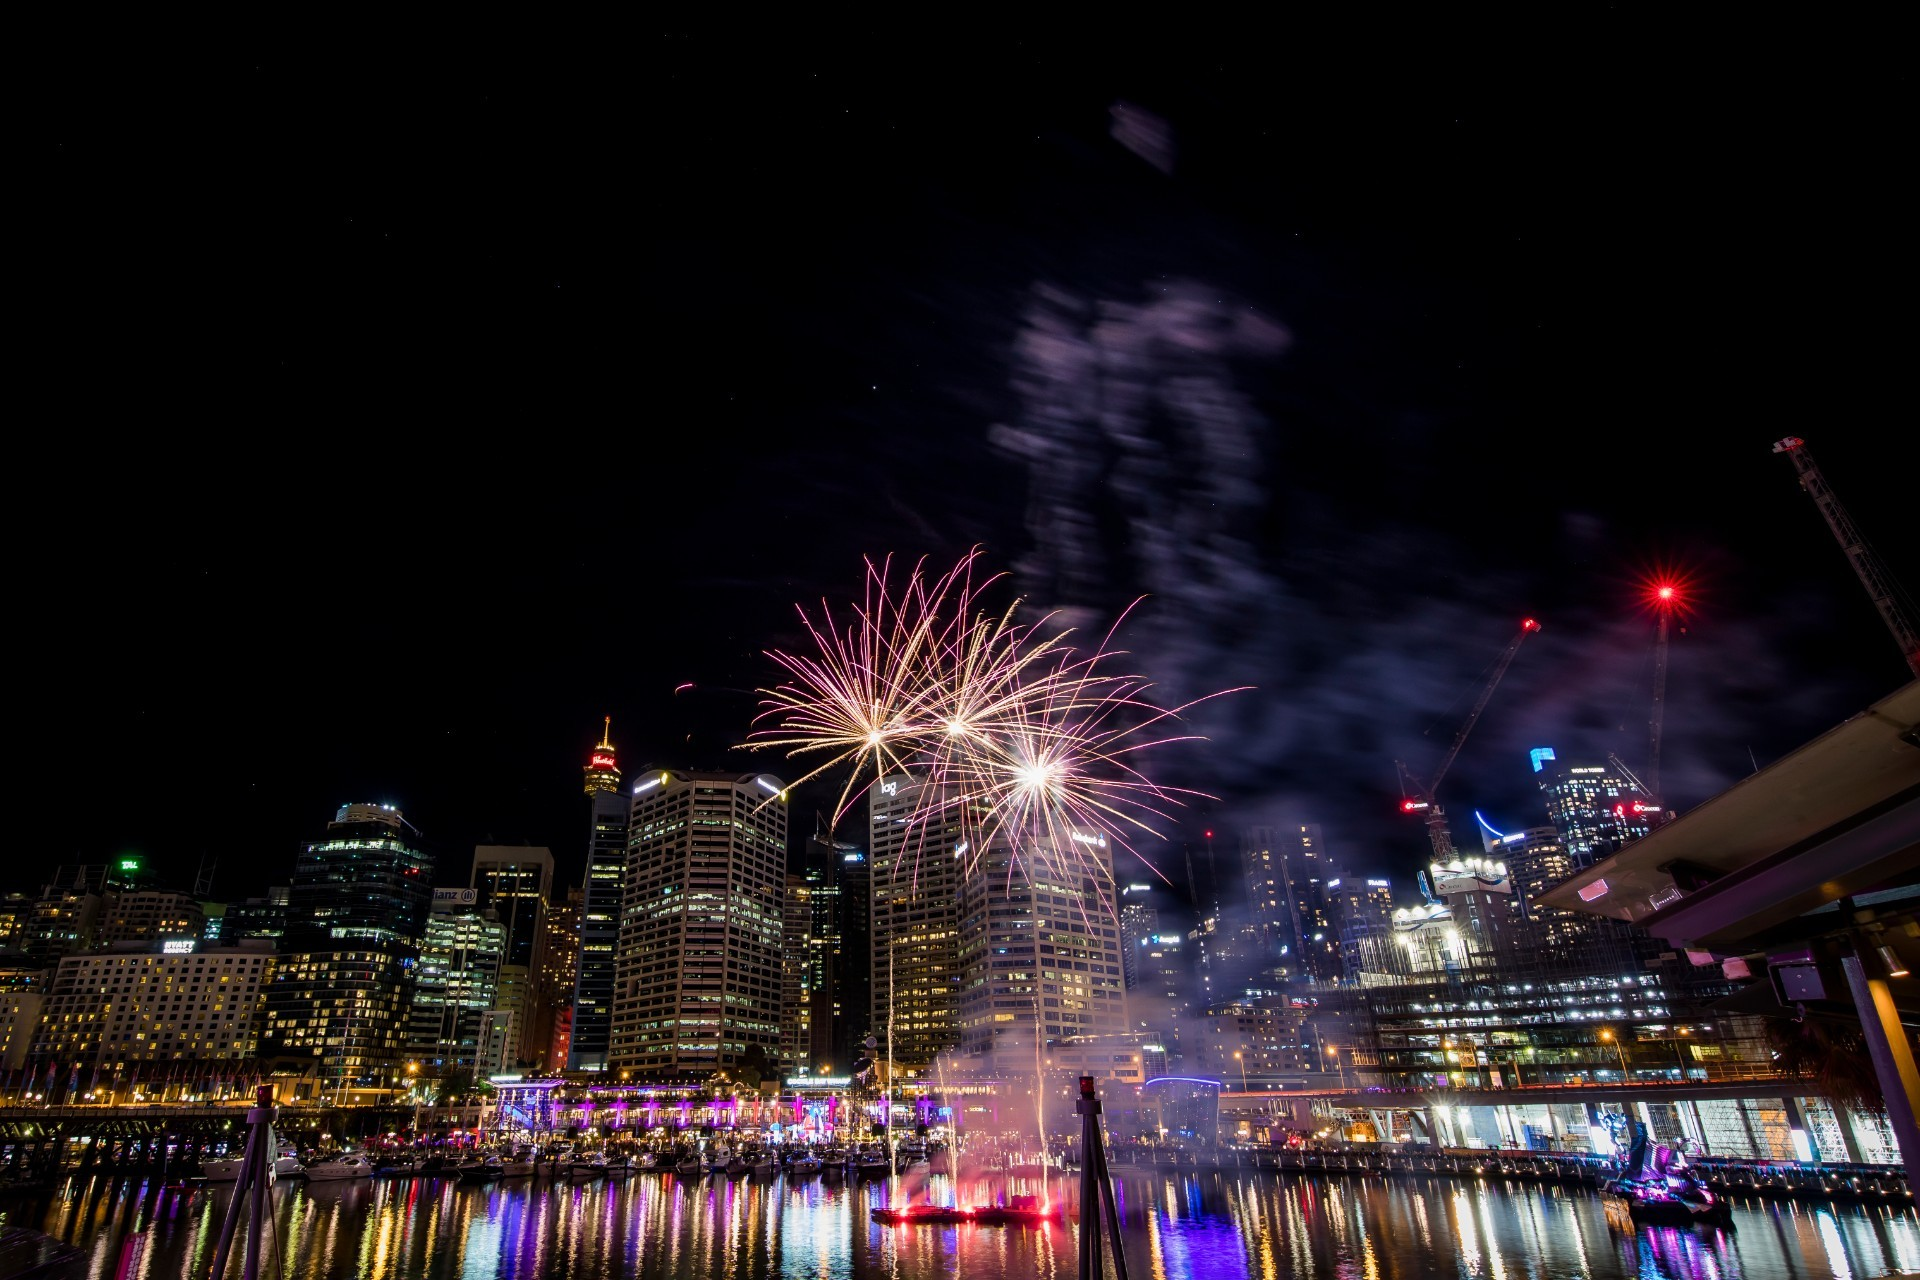 The city skyline view from Darling Harbour with fireworks.